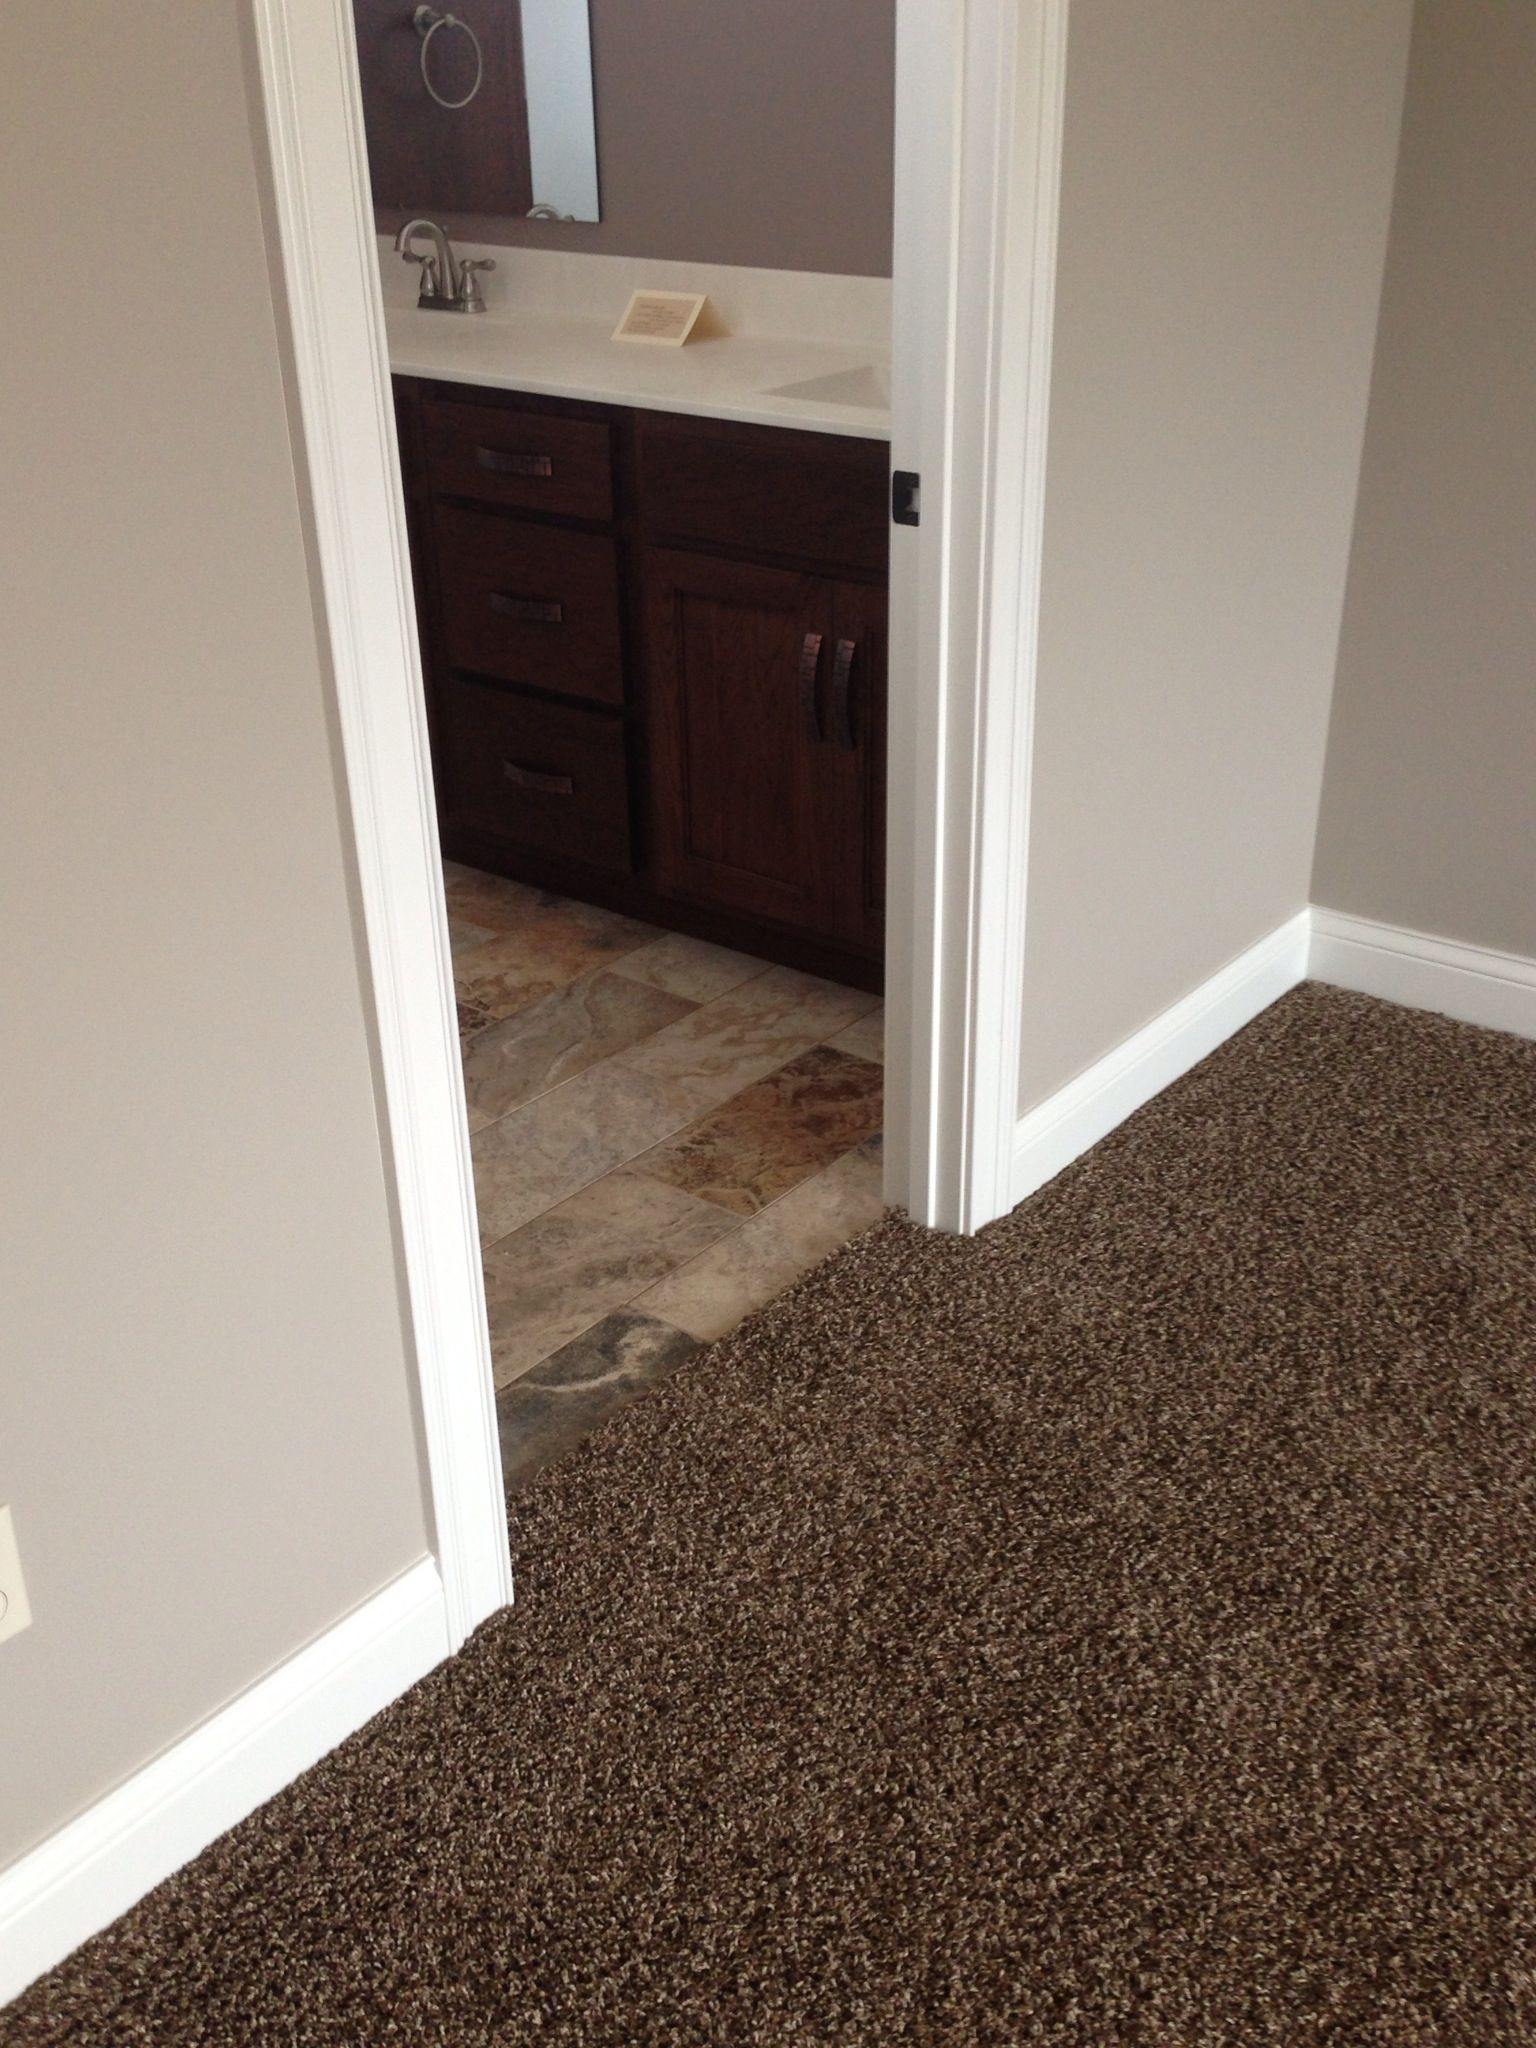 Like Carpet Looks Much Darker In This Pic And Tile Colors With The Dark Brown BedroomBrown Living